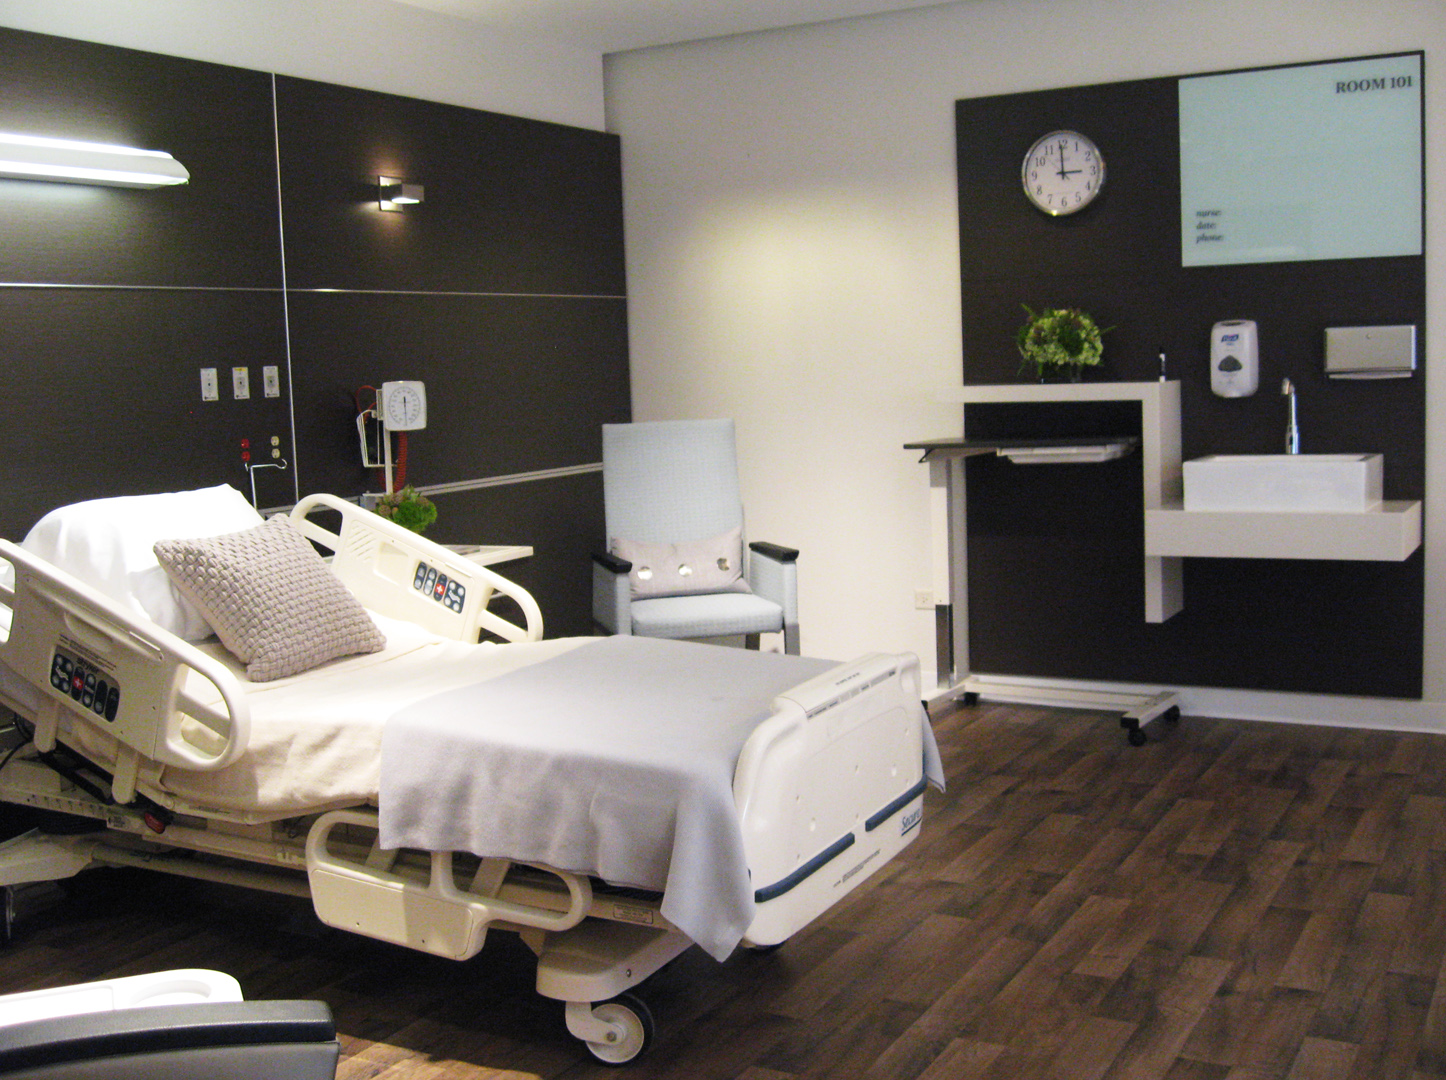 Design4aging innovative patient room design Room builder